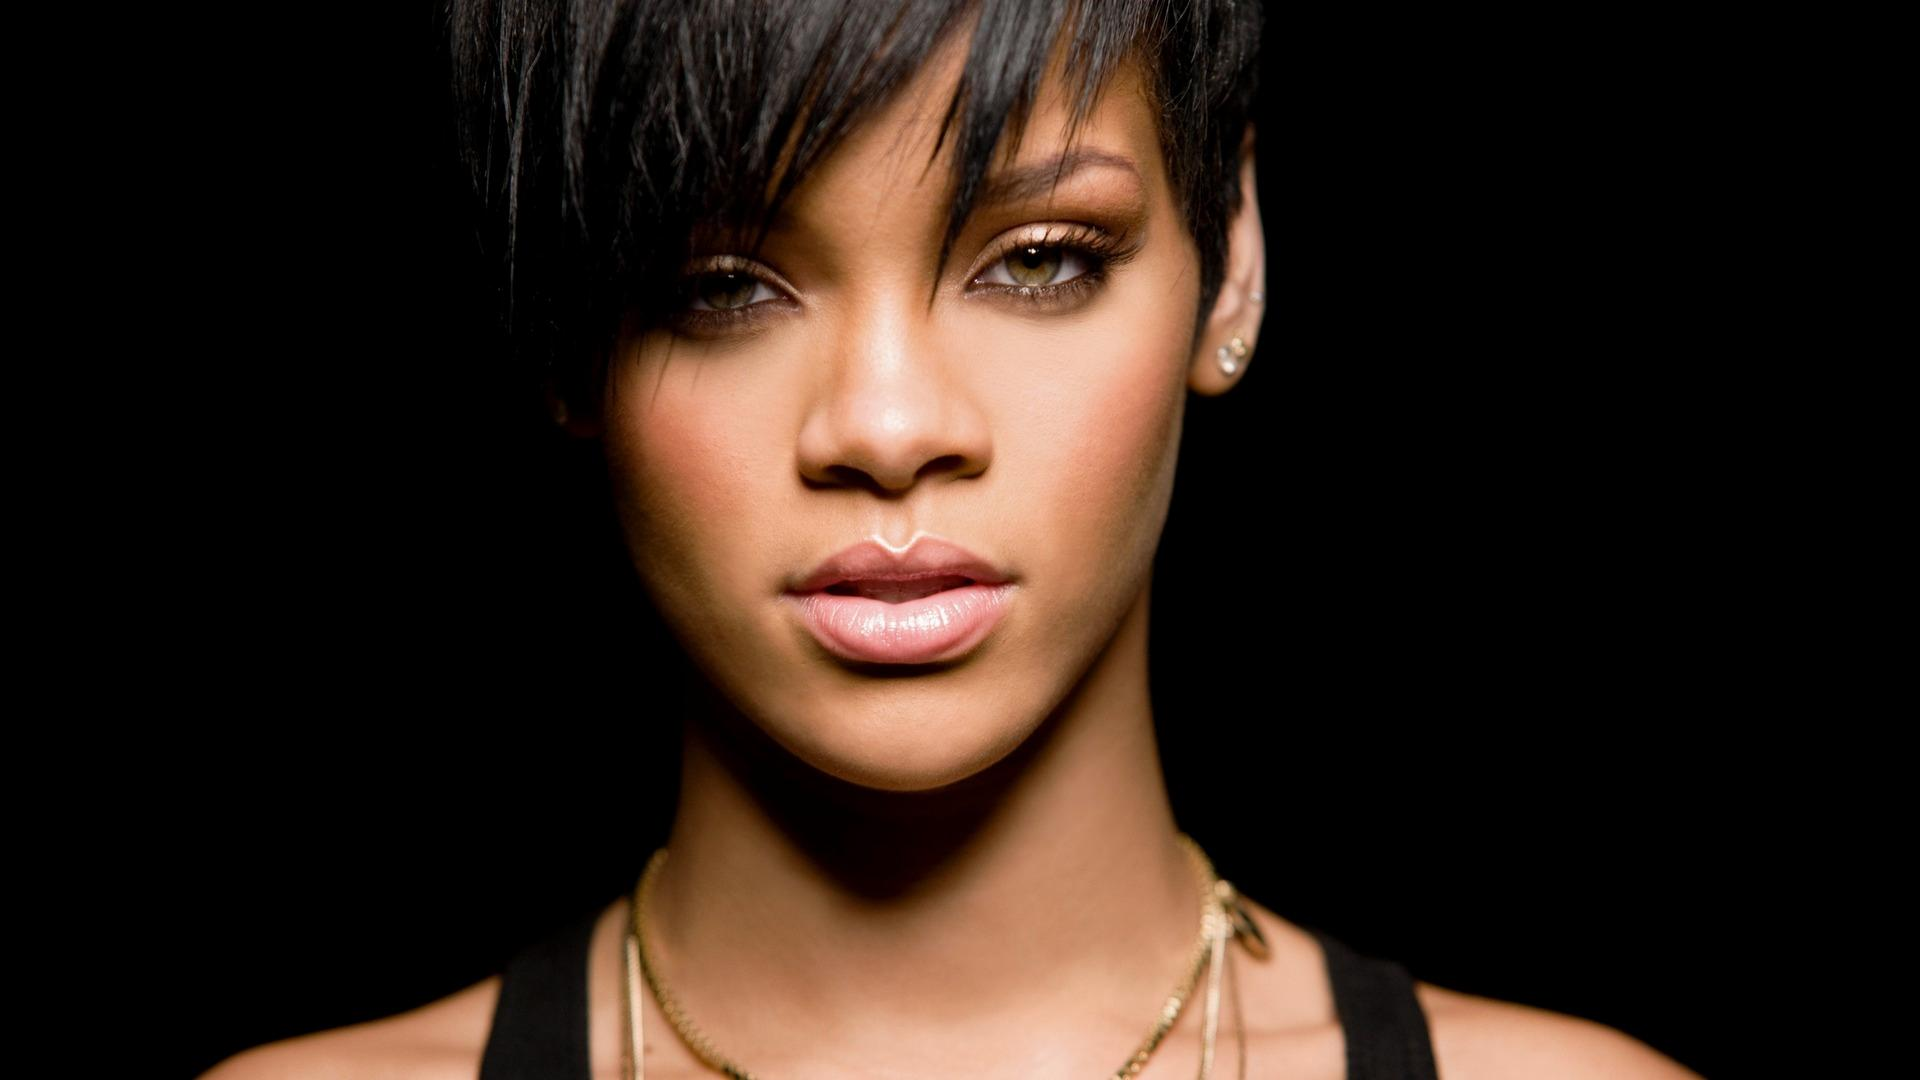 Rihanna Full HD Wallpapers